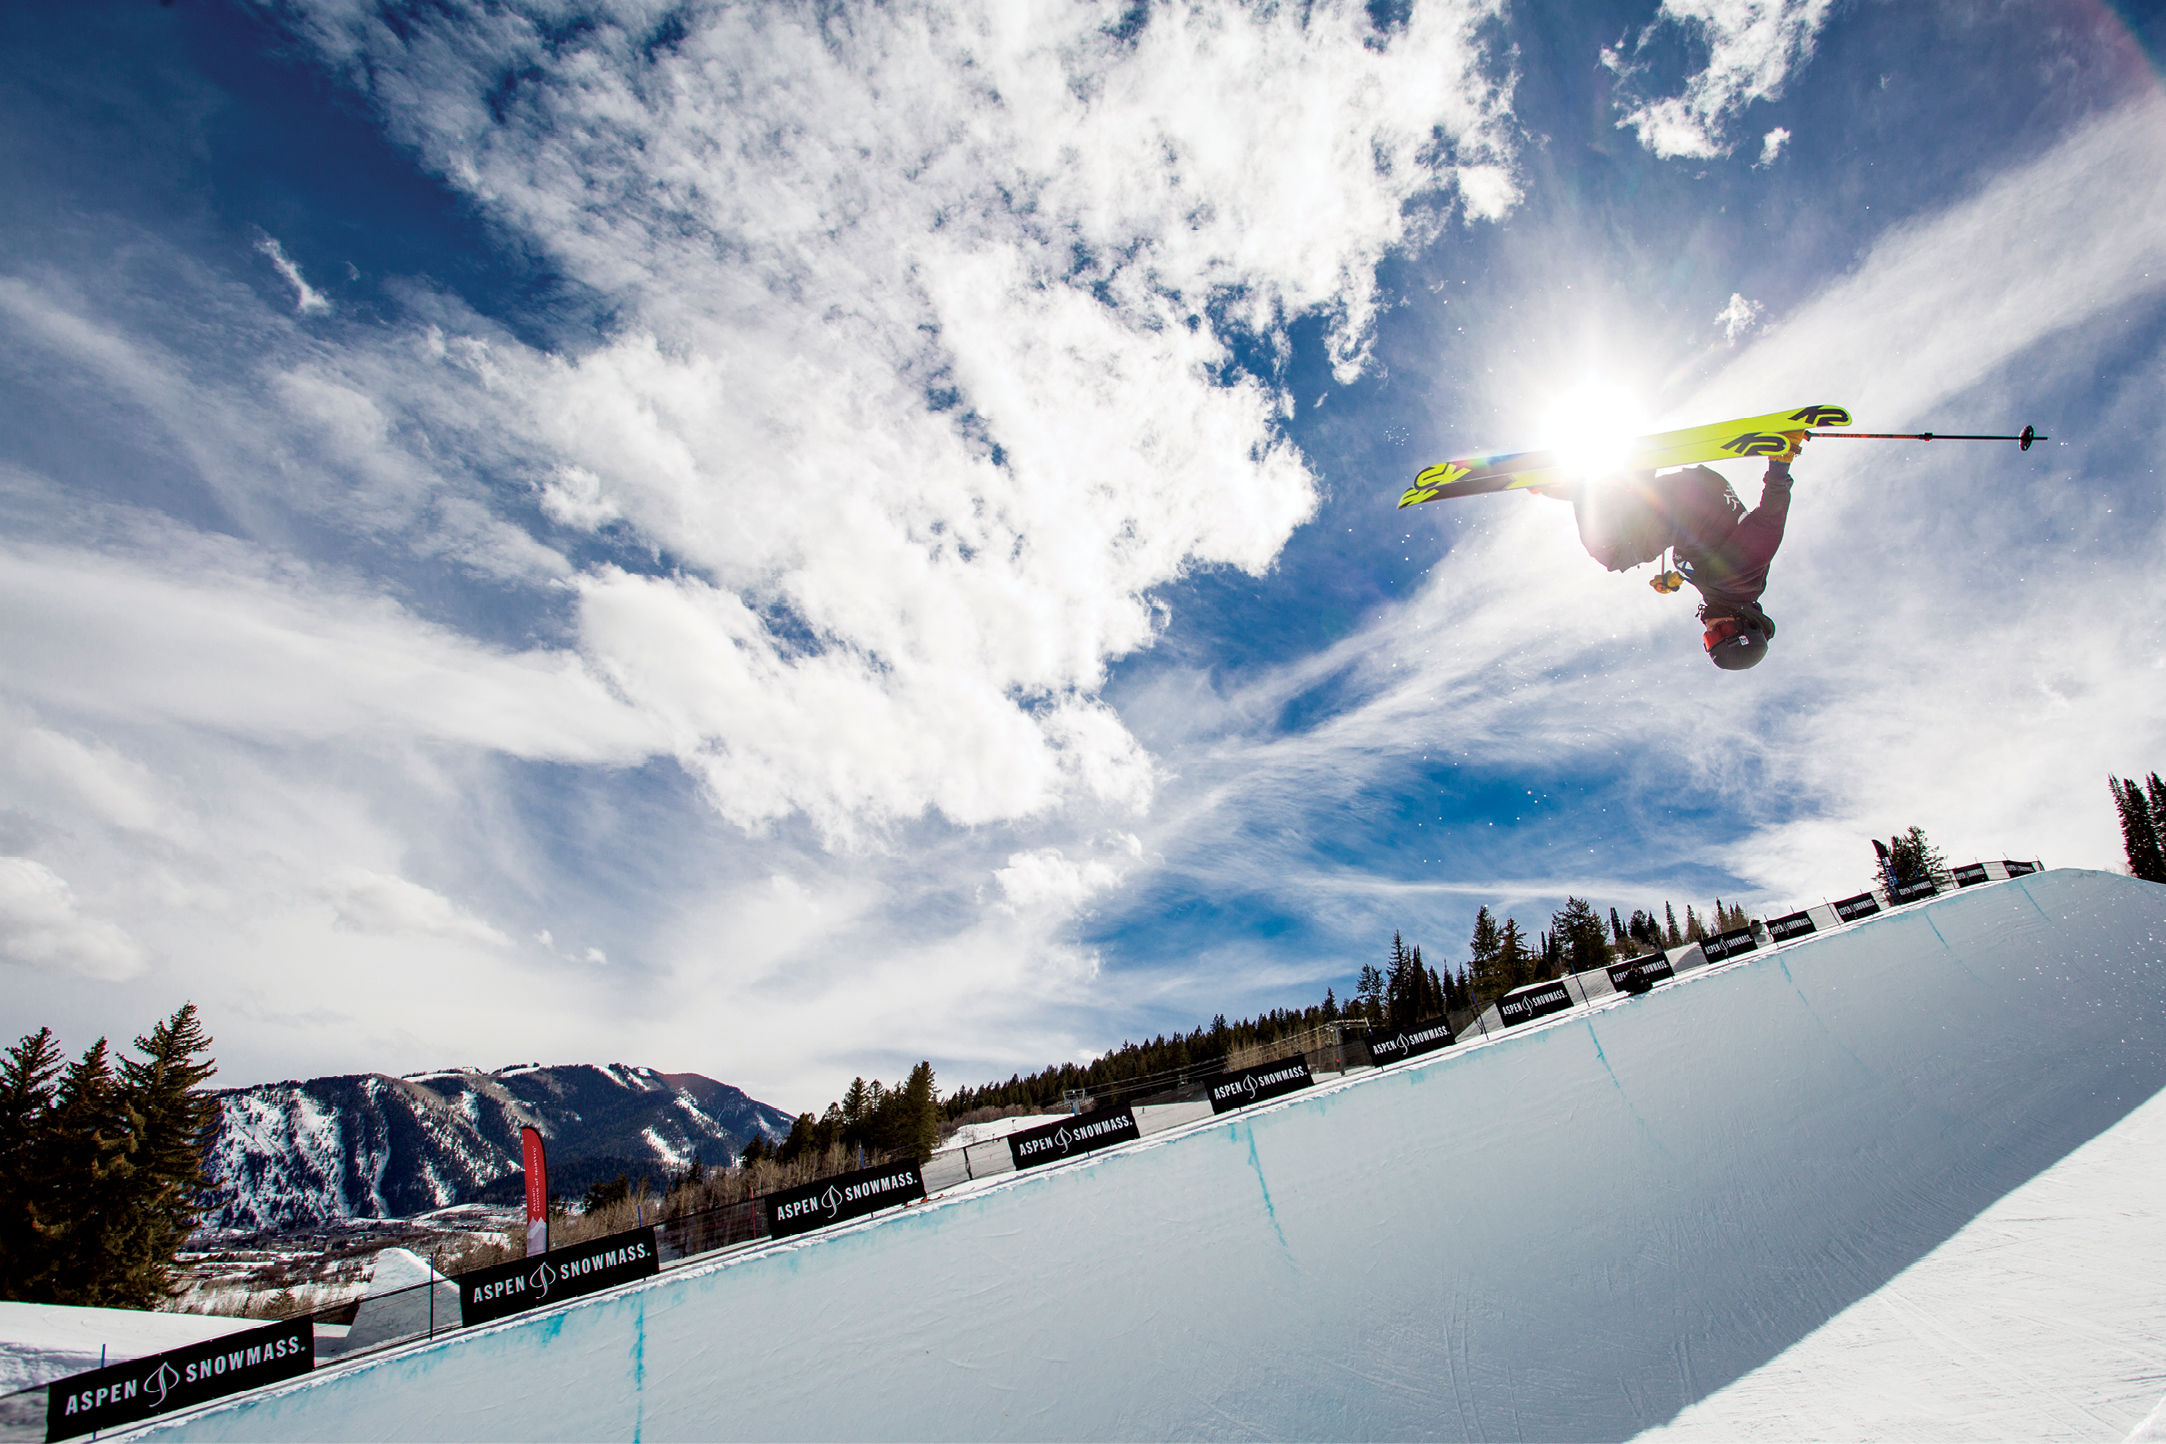 1217 mountain time aspen snowmass half pipe fh0ihg